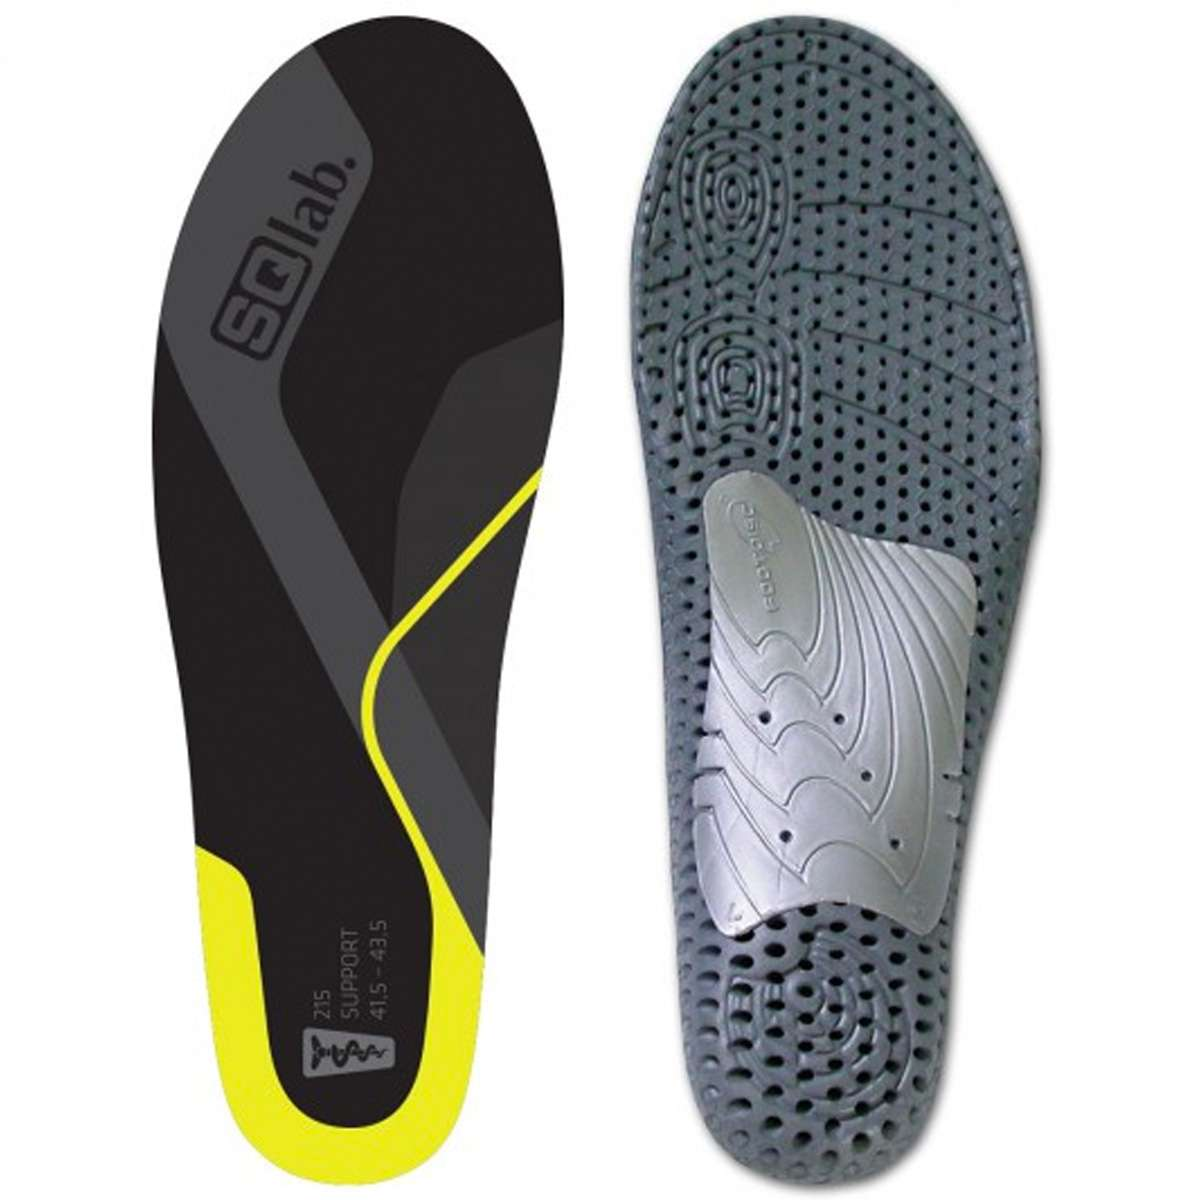 SQlab 215 Support Gold Mid Arch Cycling Shoe Insoles